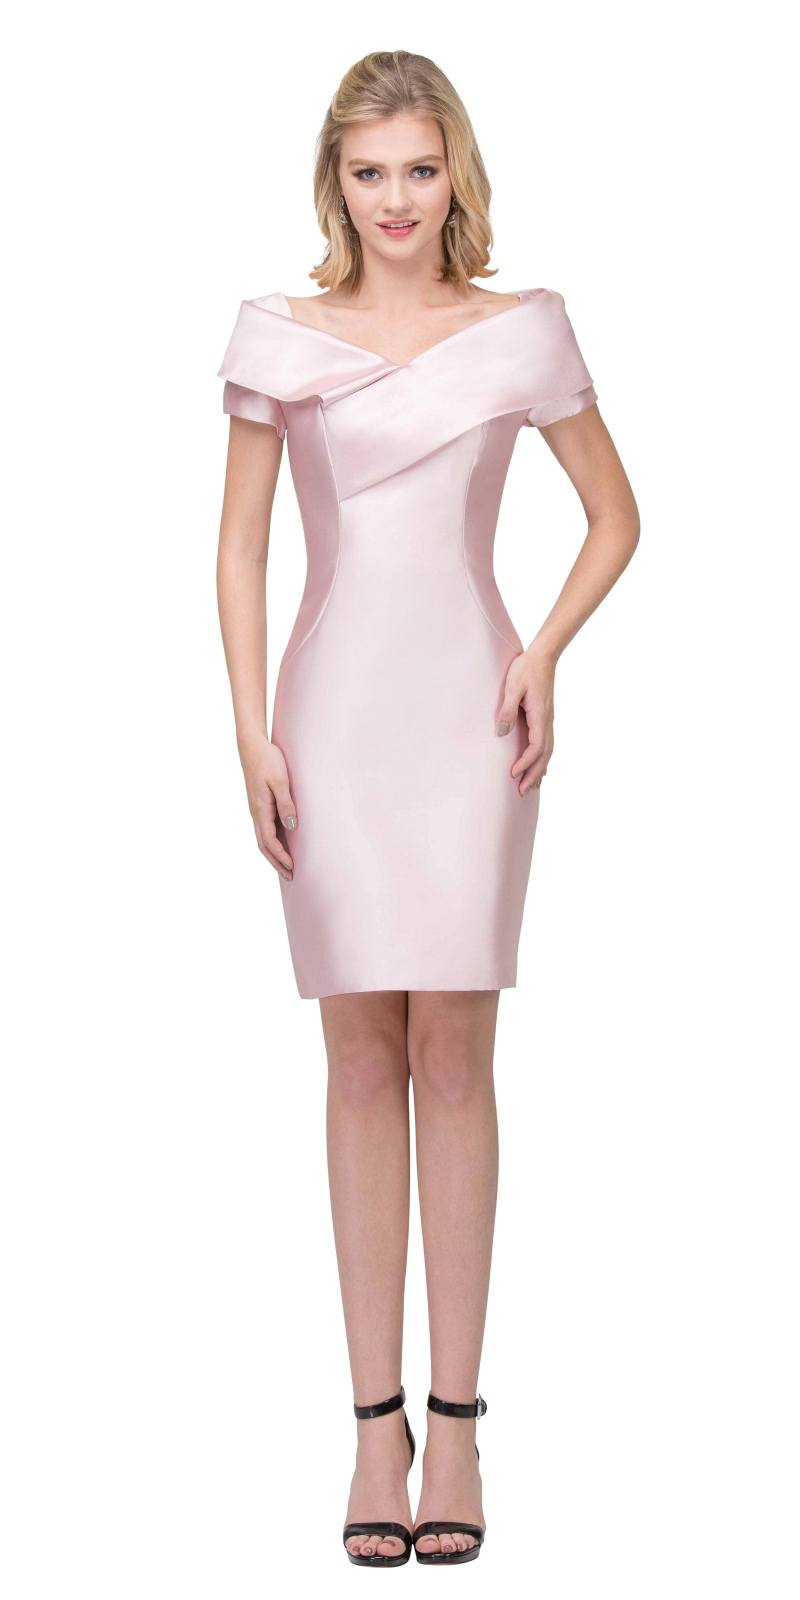 Blush Wedding Guest Formal Dress With Short Sleeves